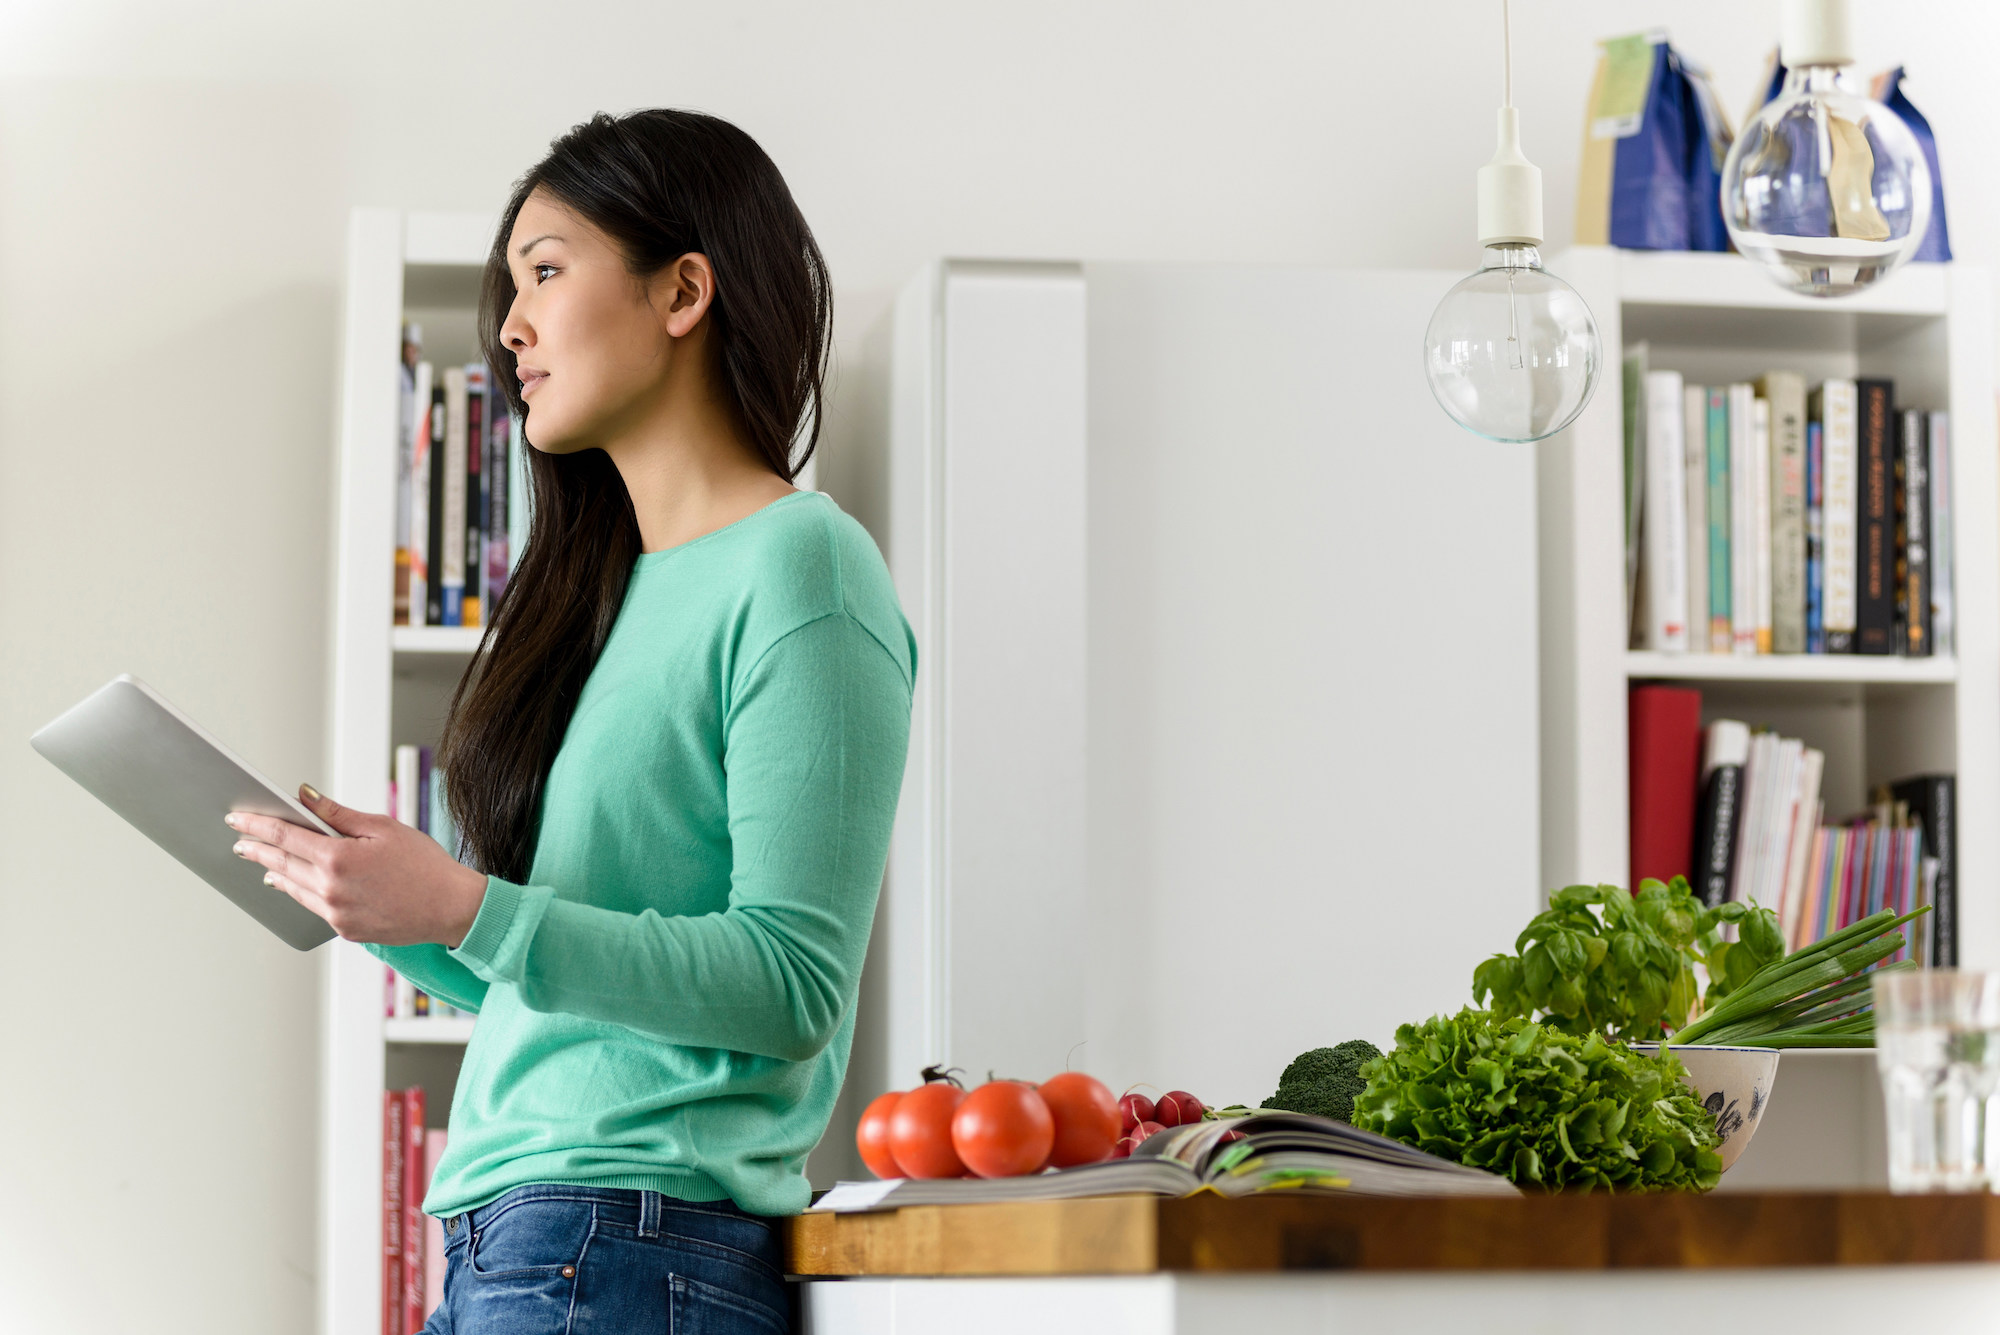 Woman Cooking in Kitchen with Cookbooks